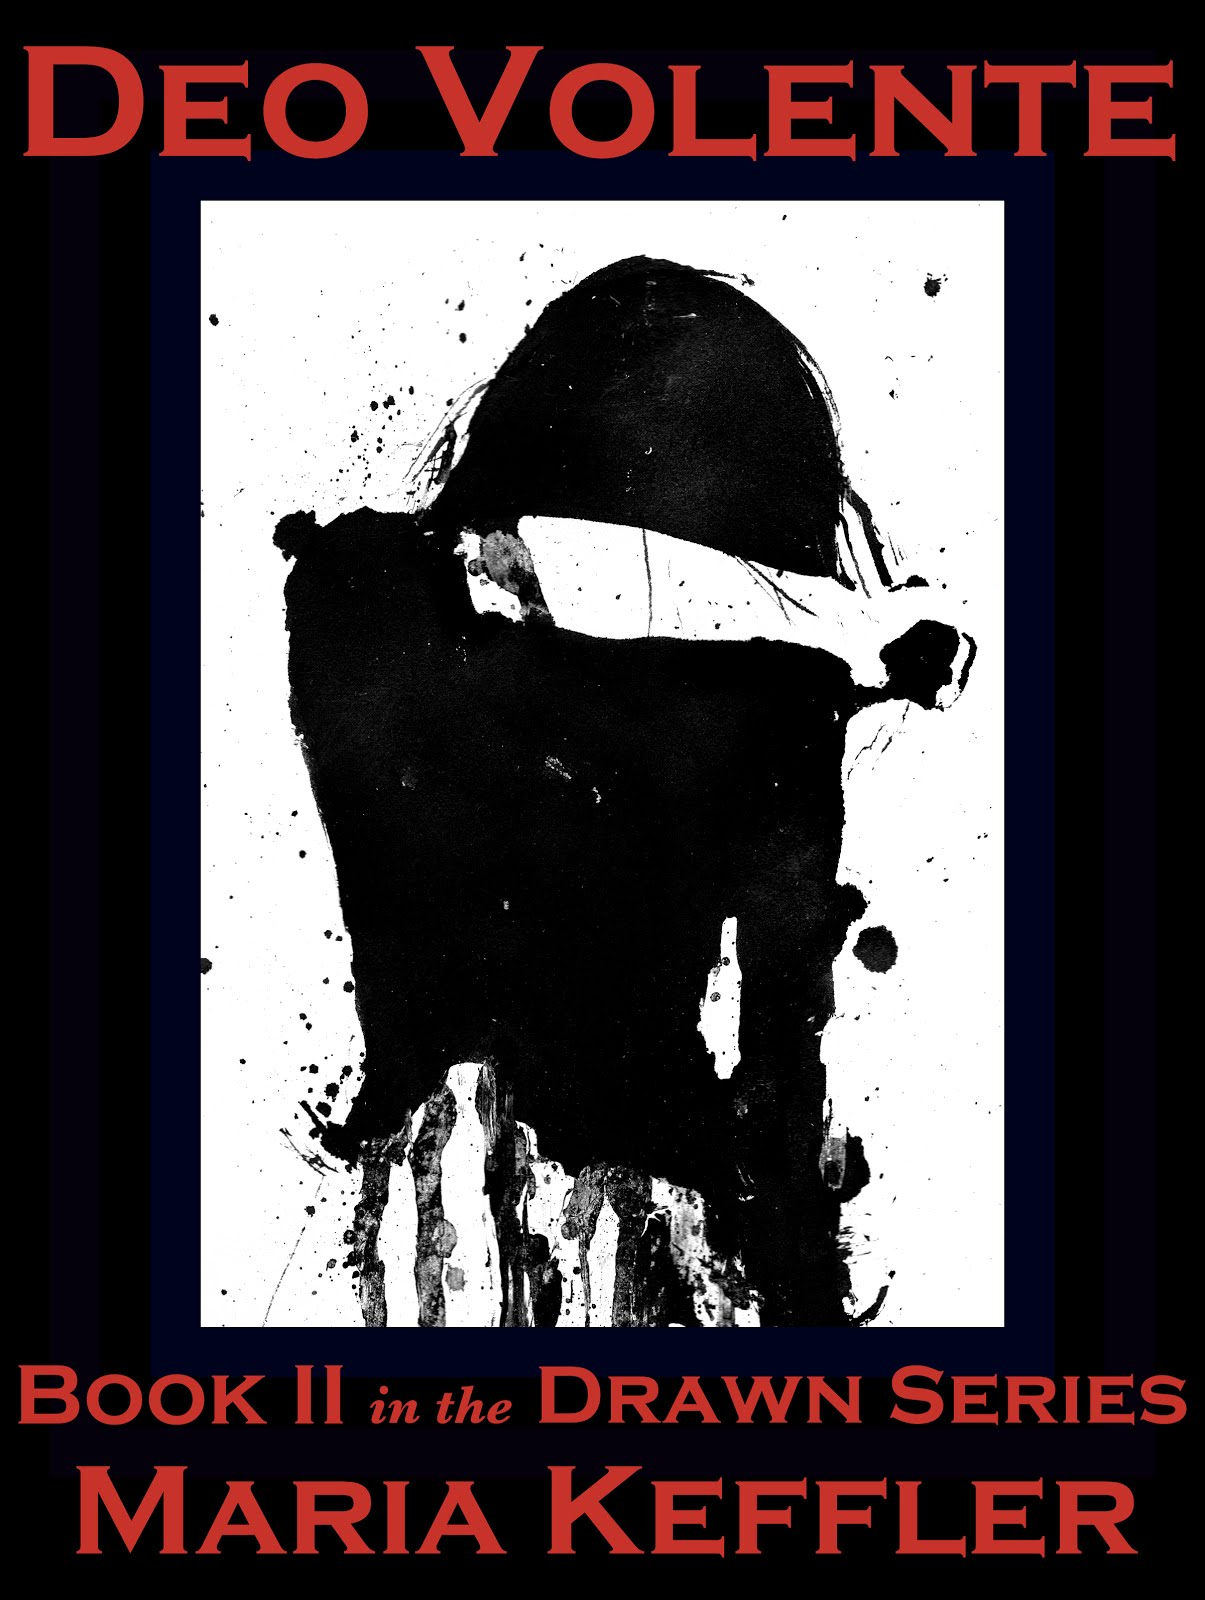 Deo Volente (DRAWN Series, Book II)